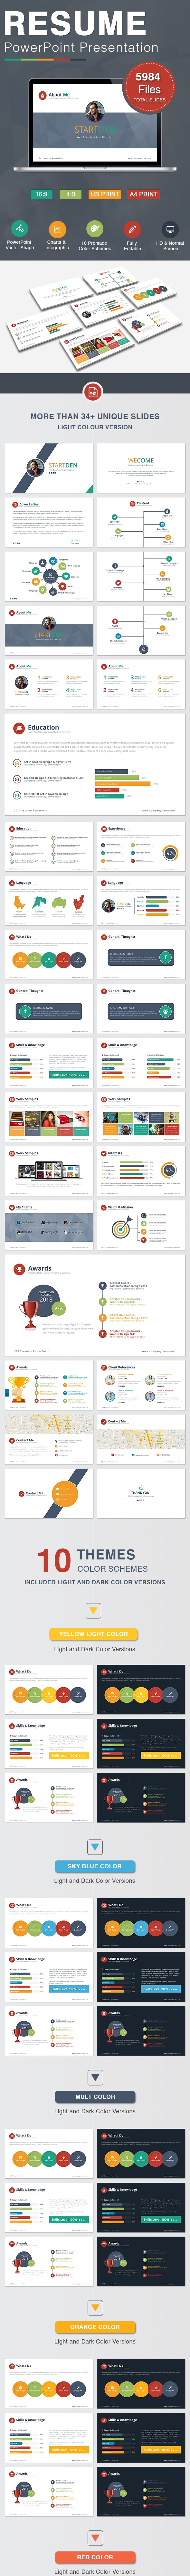 Resume Powerpoint - PowerPoint Templates Presentation Templates